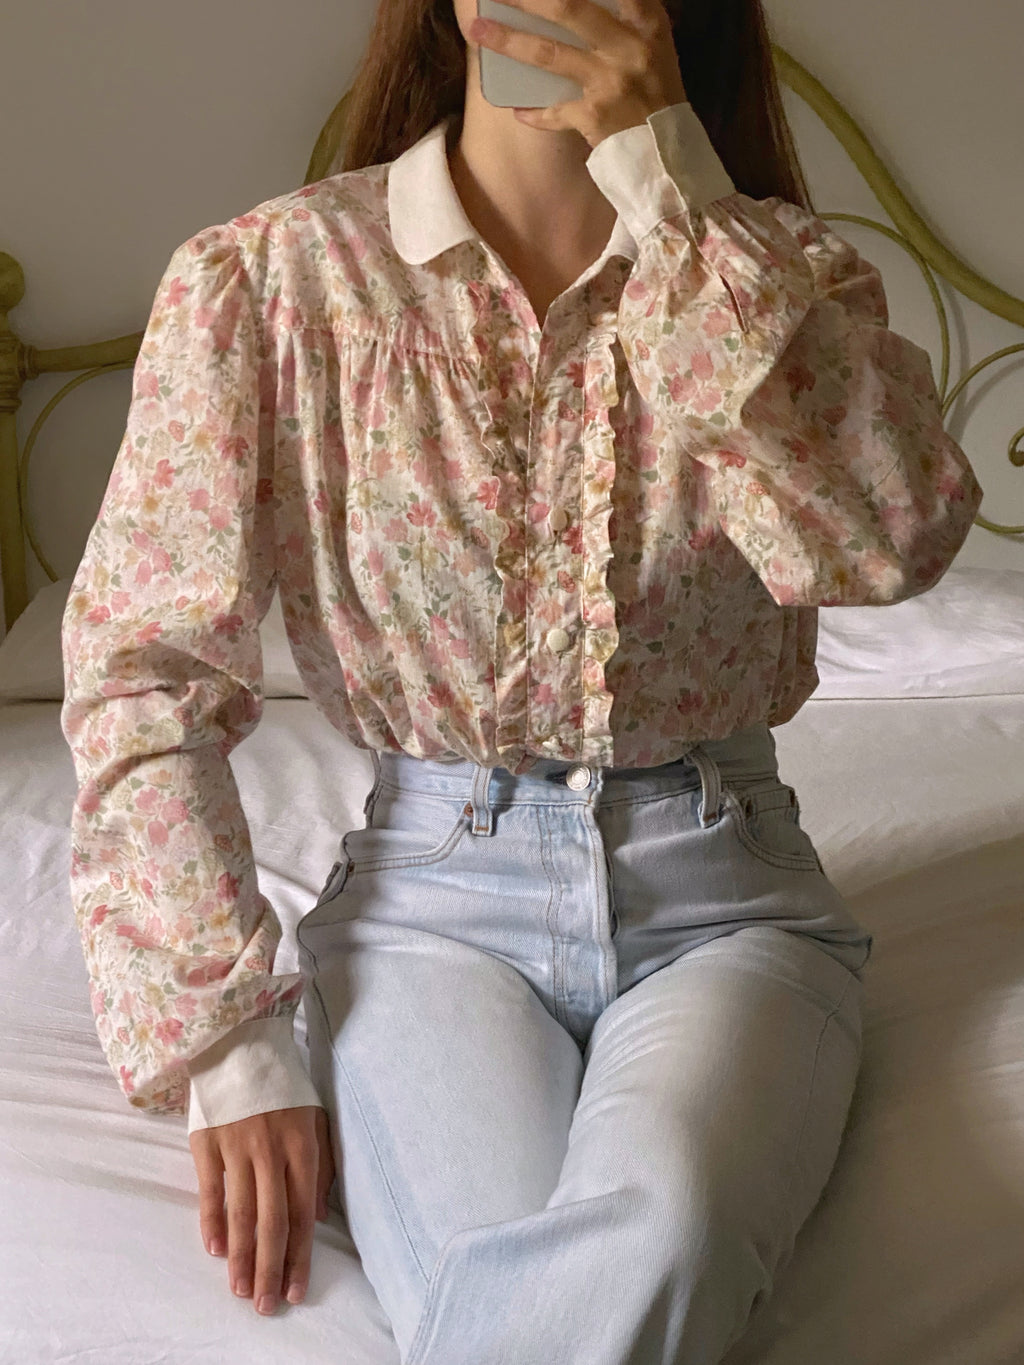 Vintage handmade cotton flowers shirt with silk details